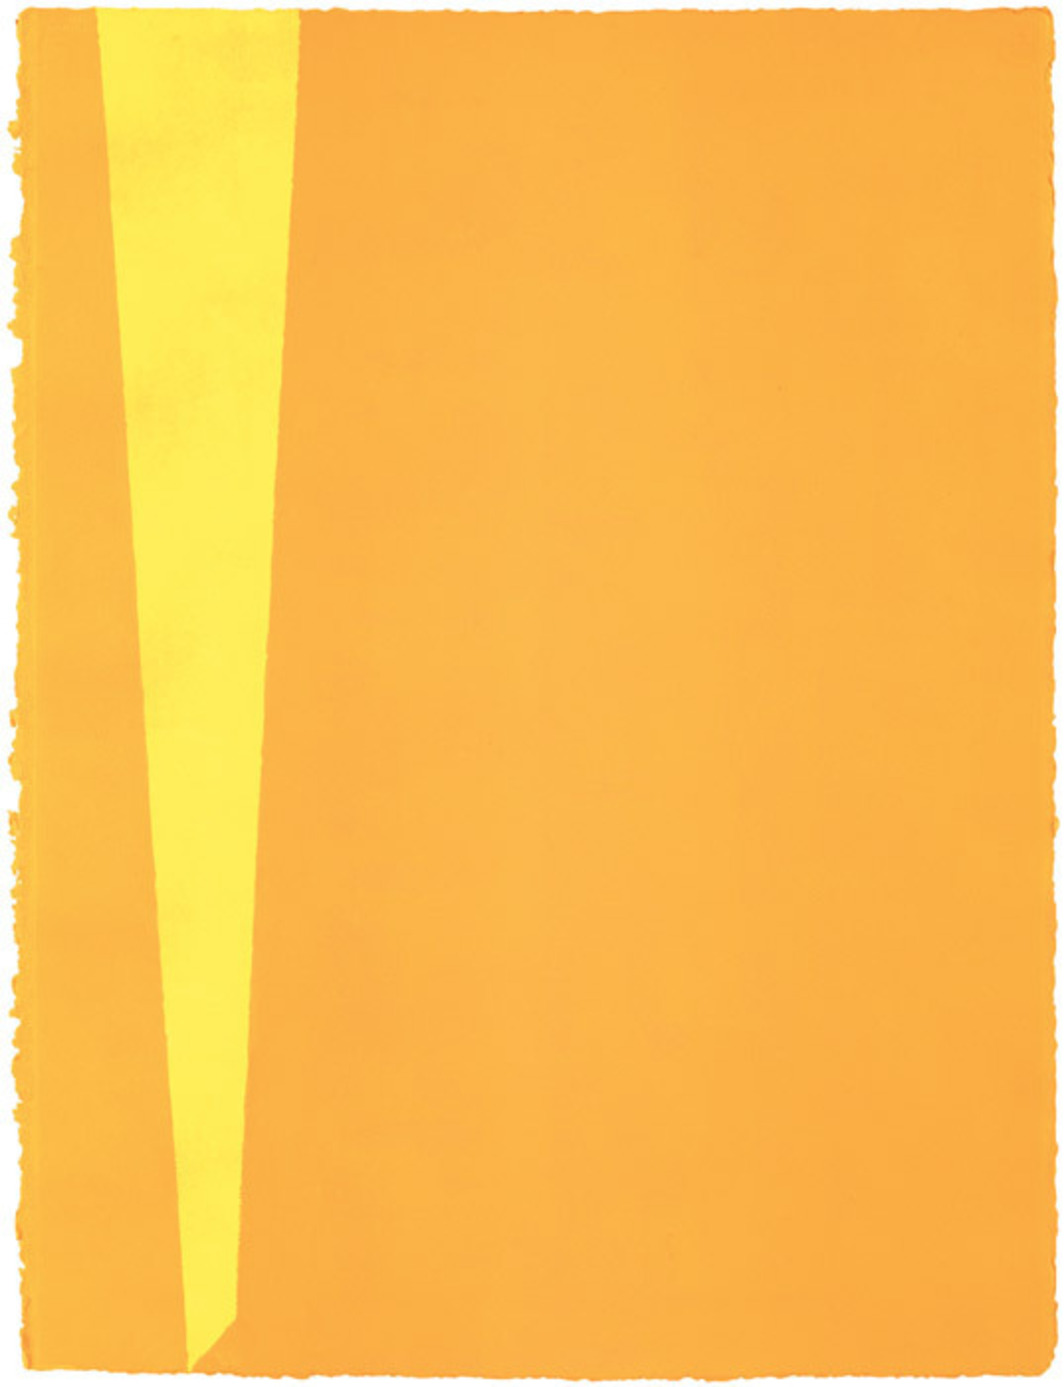 "Anne Truitt, Untitled, 1986, acrylic on paper, 30 1/4 x 23""."